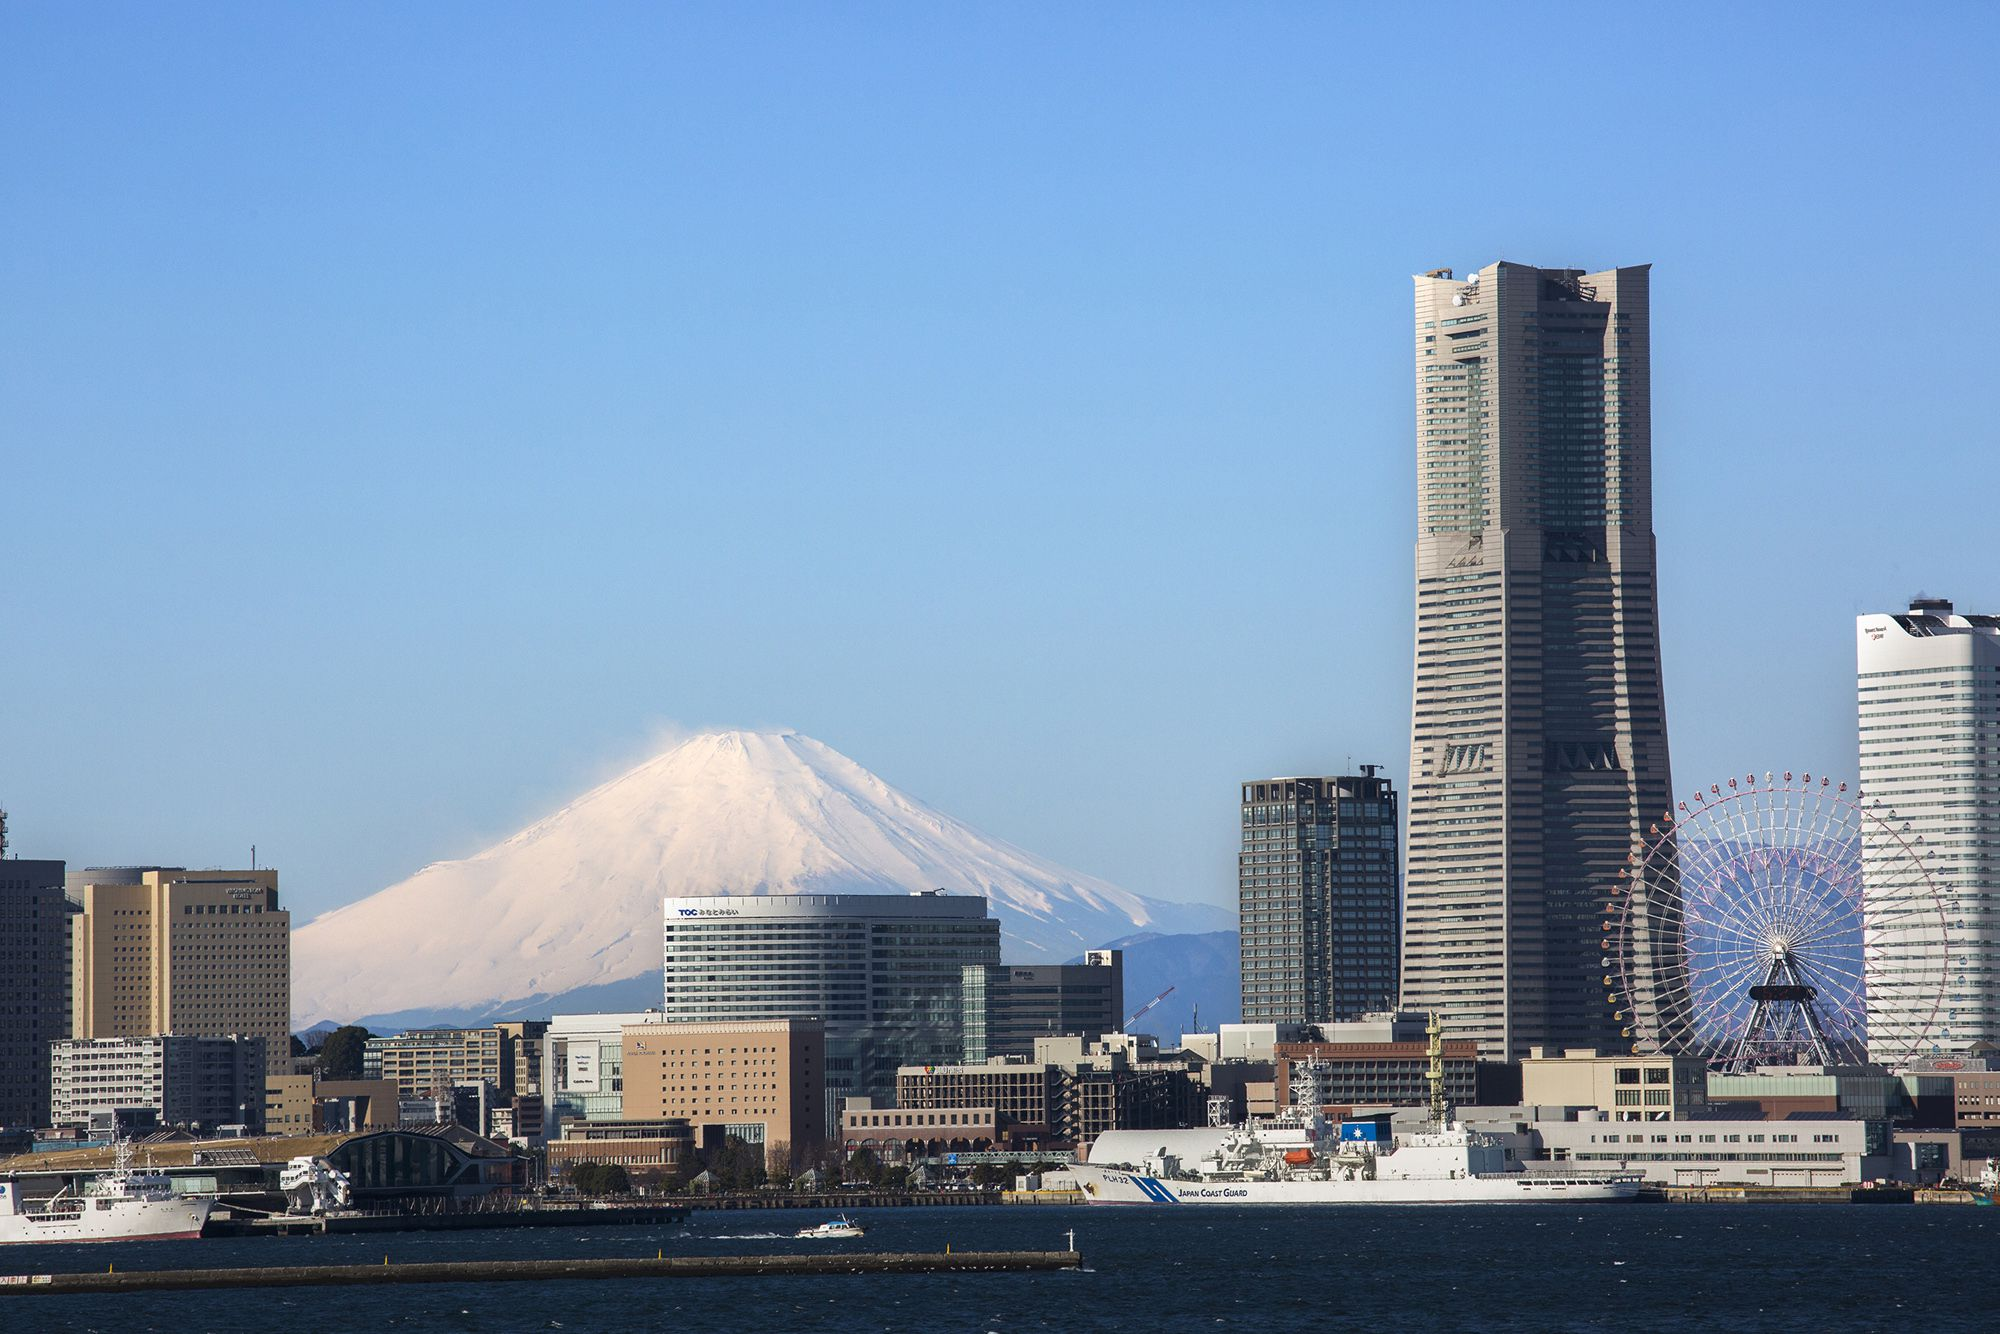 A snow-capped Mount Fuji glimpsed from off the Yokohama coast, from a ferry plying Tokyo Bay.